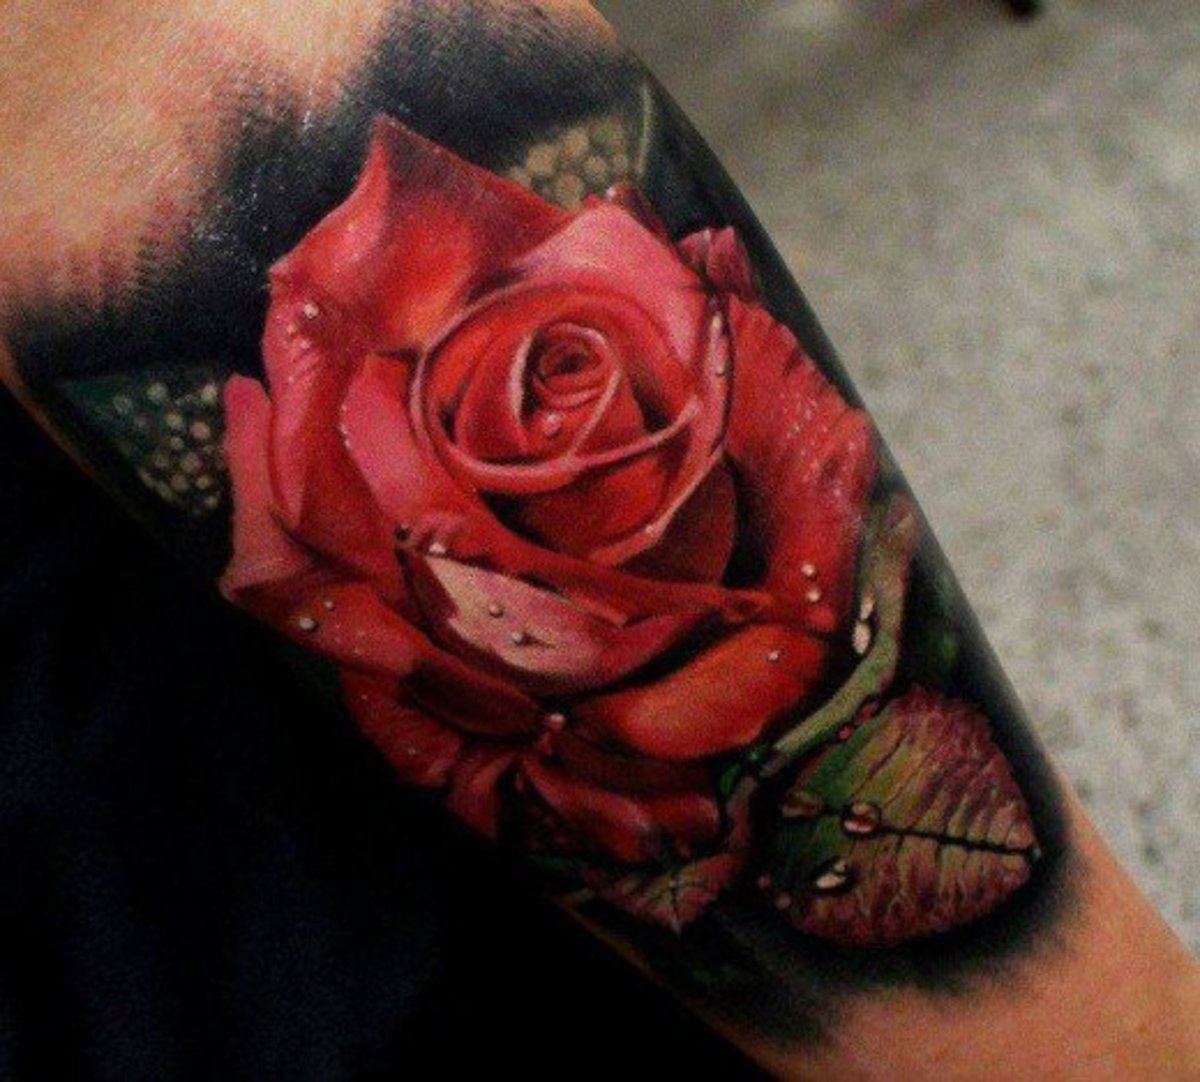 Rose tattoo on underarm